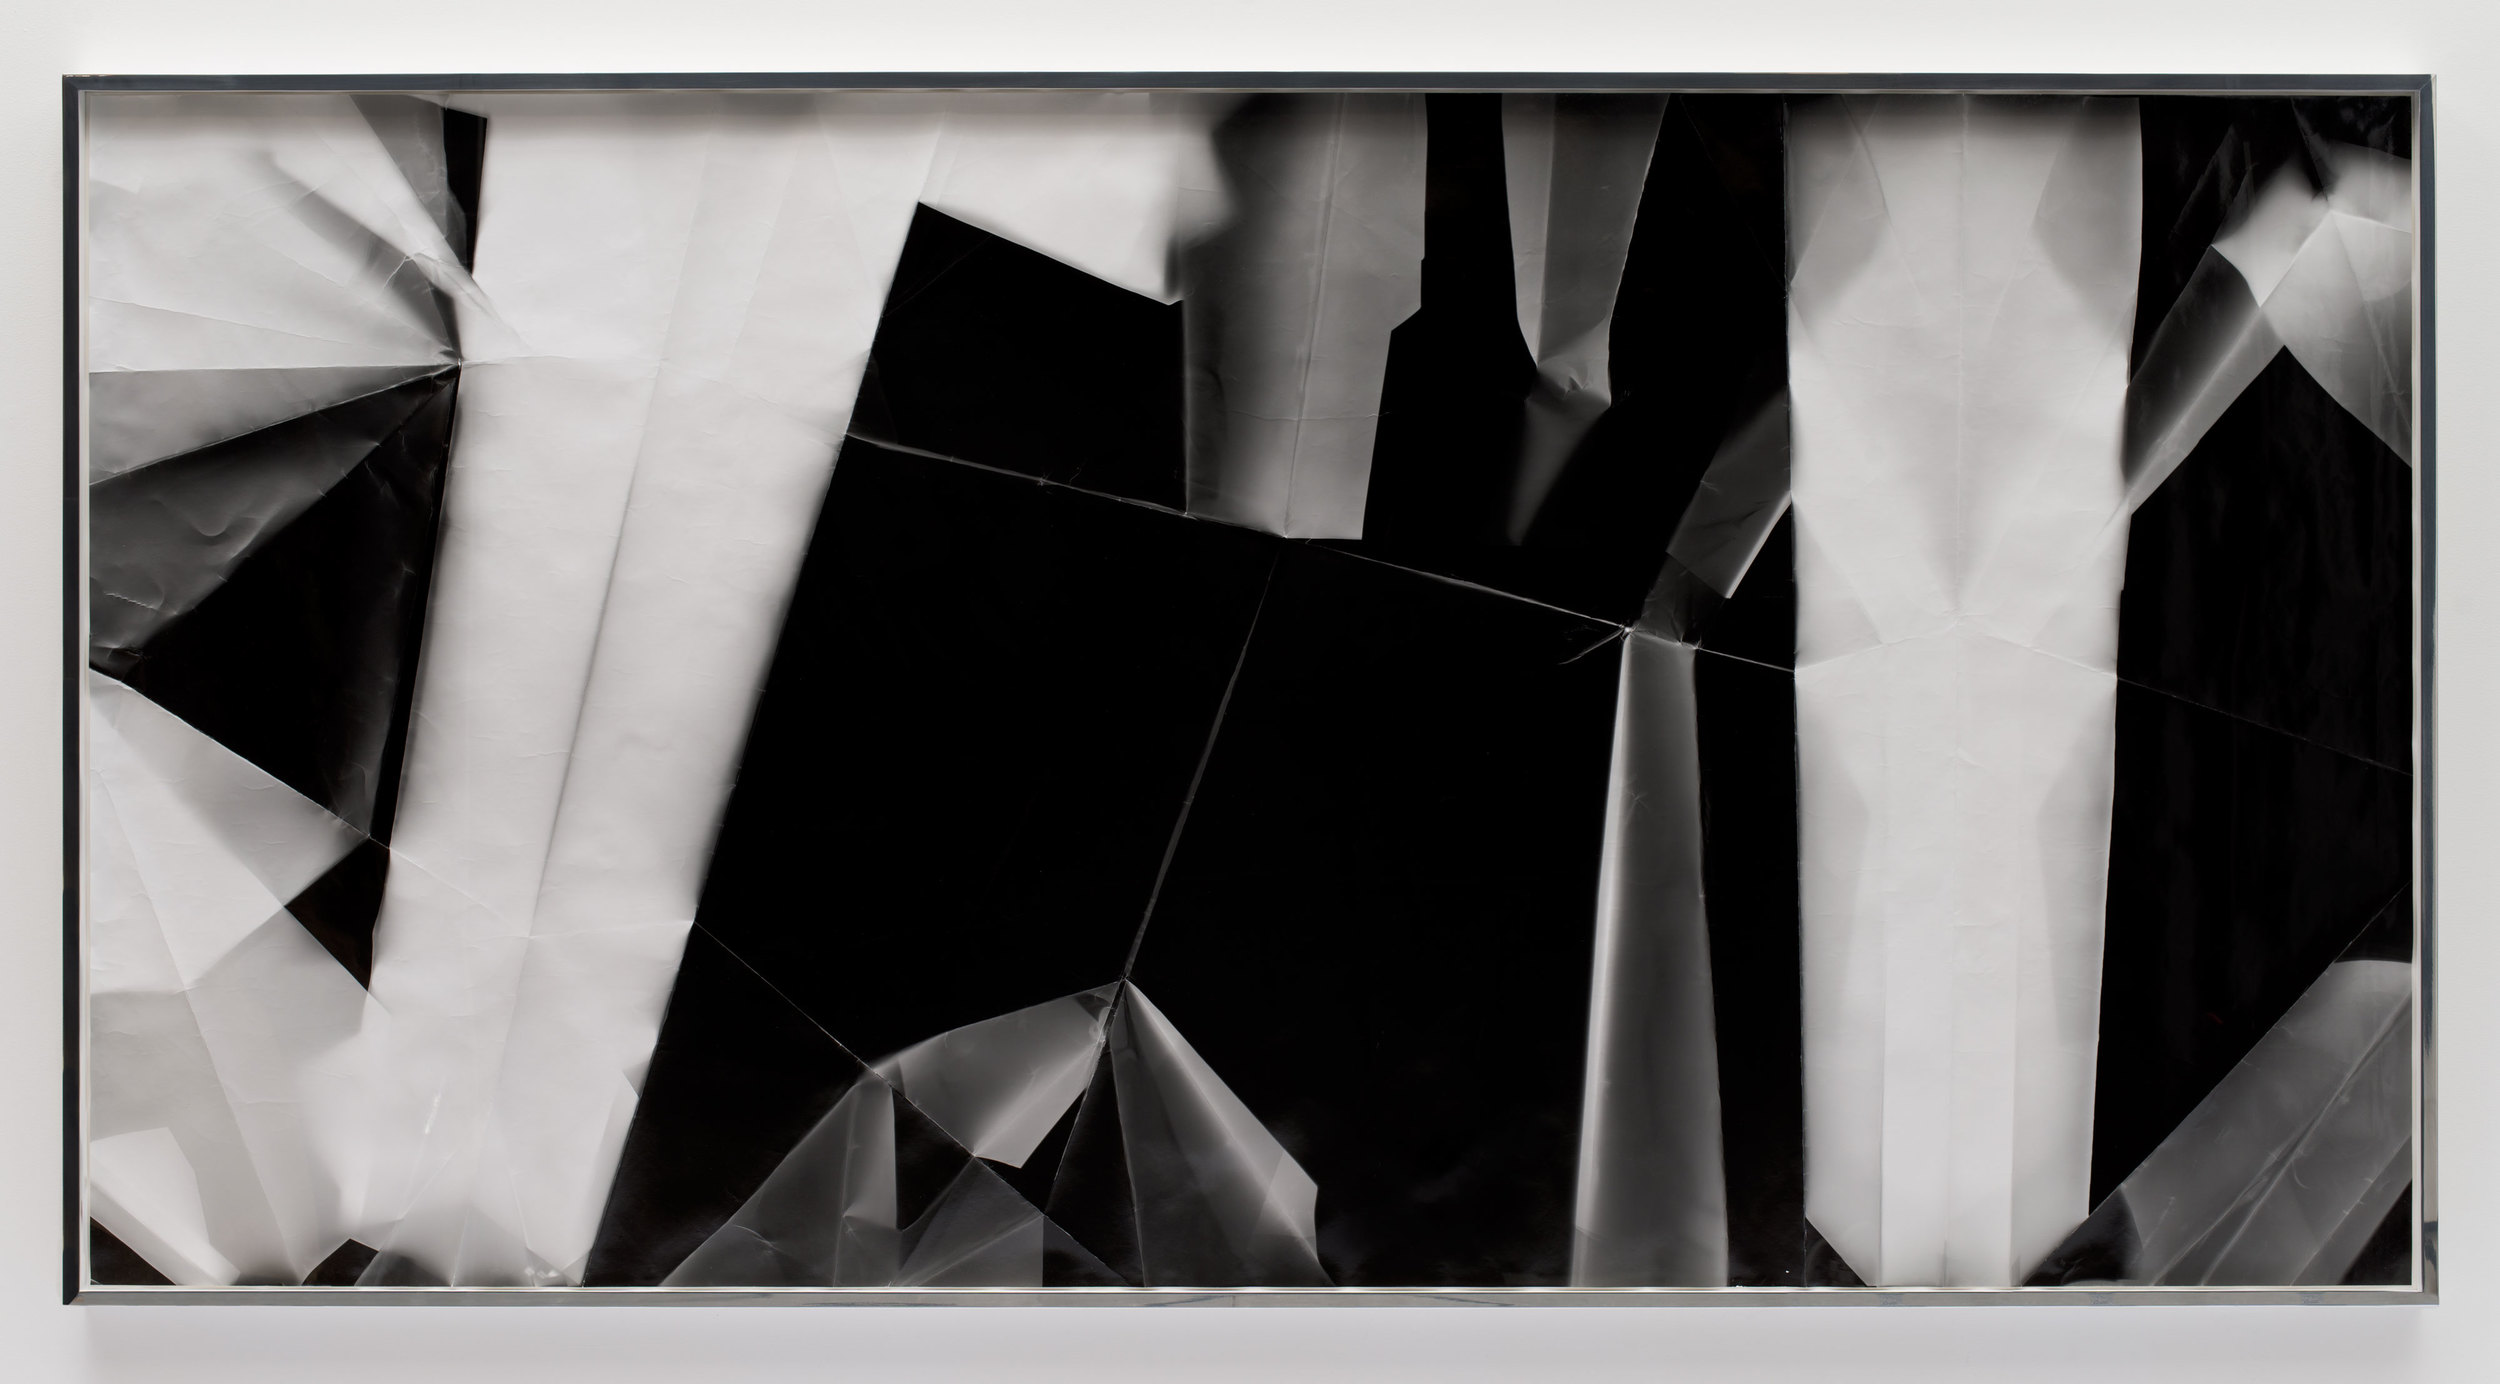 Fold (45º/135º/225º/315º directional light sources), December 31,2012, Los Angeles, California, Ilford Multigrade IV MGF.1K    2012   Black and white fiber based photographic paper  55 x 110 3/4 inches